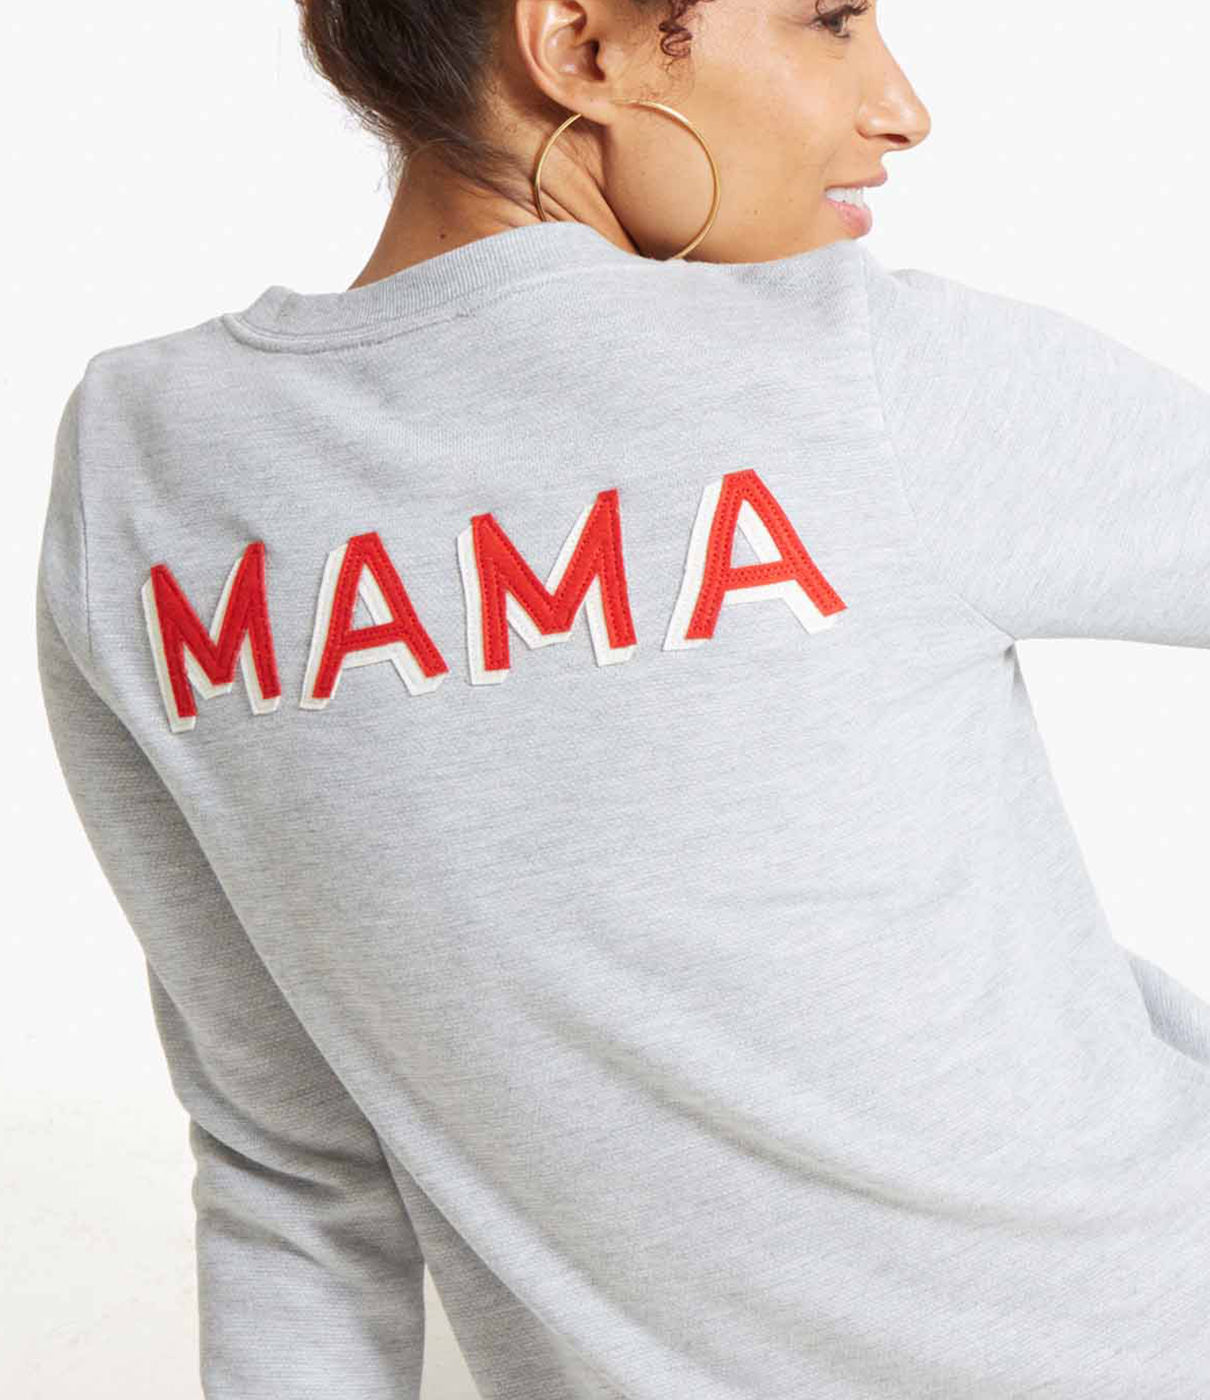 SIMPLE STYLEA crewneck sweatshirt is a style staple. We've made it mama-specific with a varsity-inspired back patch—perfect for gifting too!